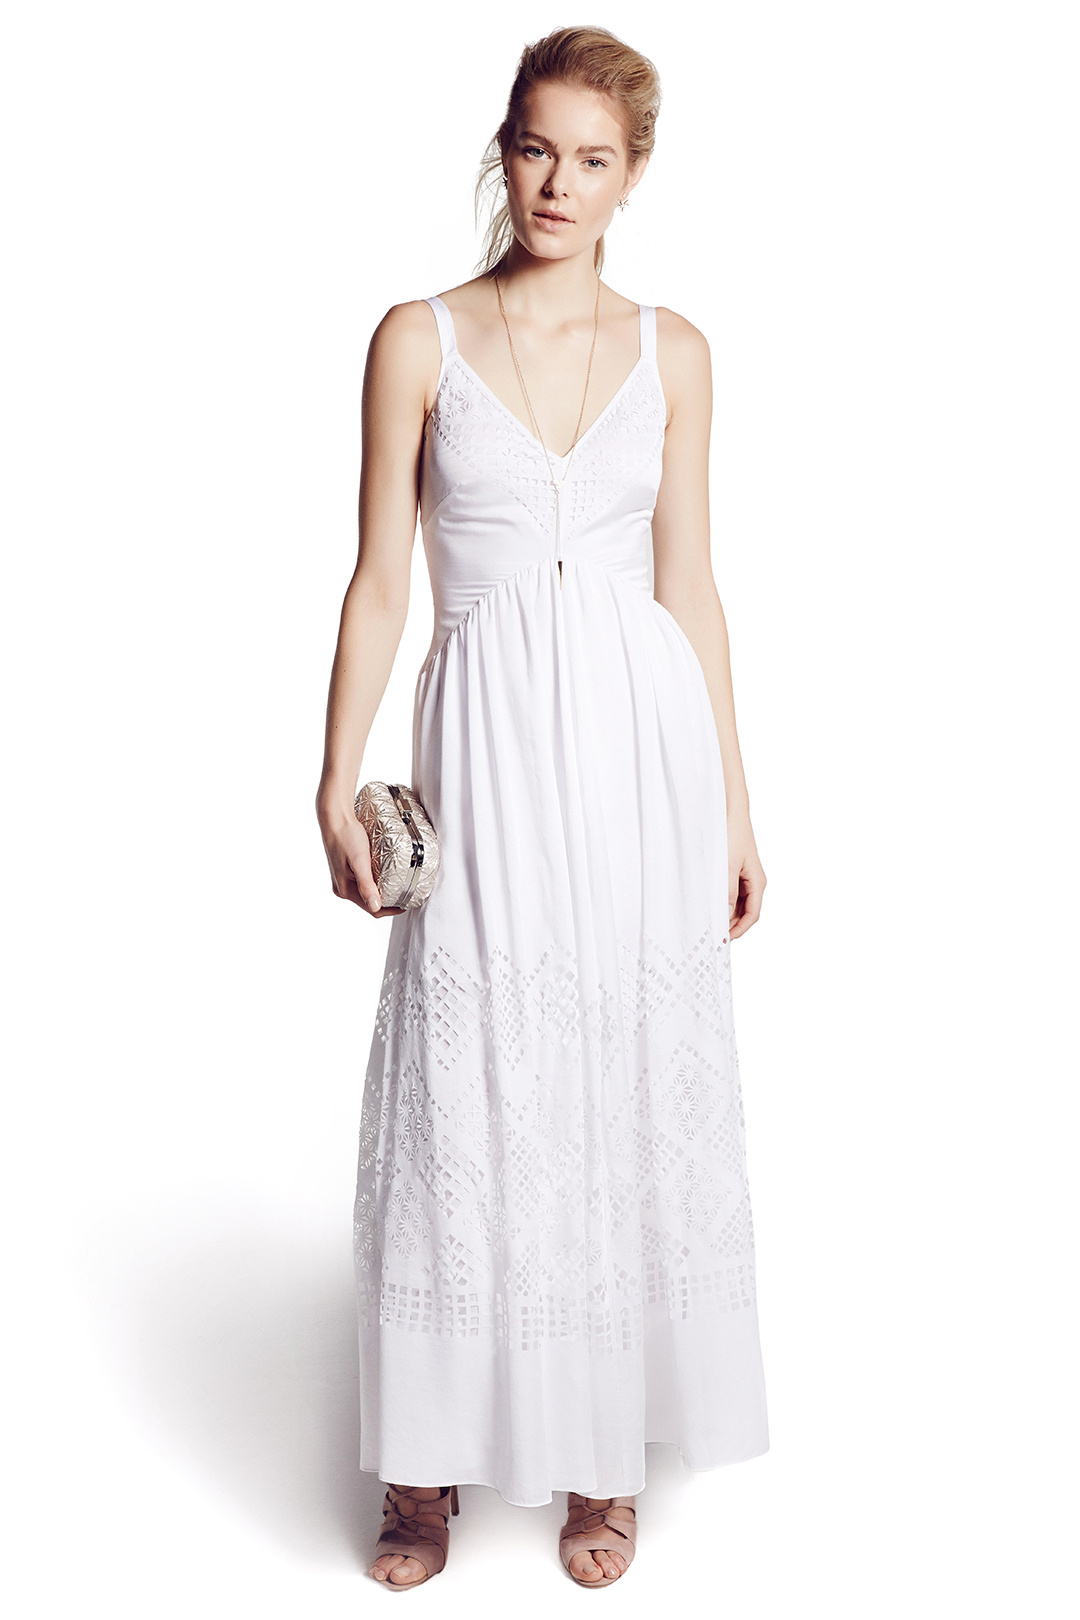 What to Wear: Designer Dresses to Rent for Any Kind of Summer Wedding